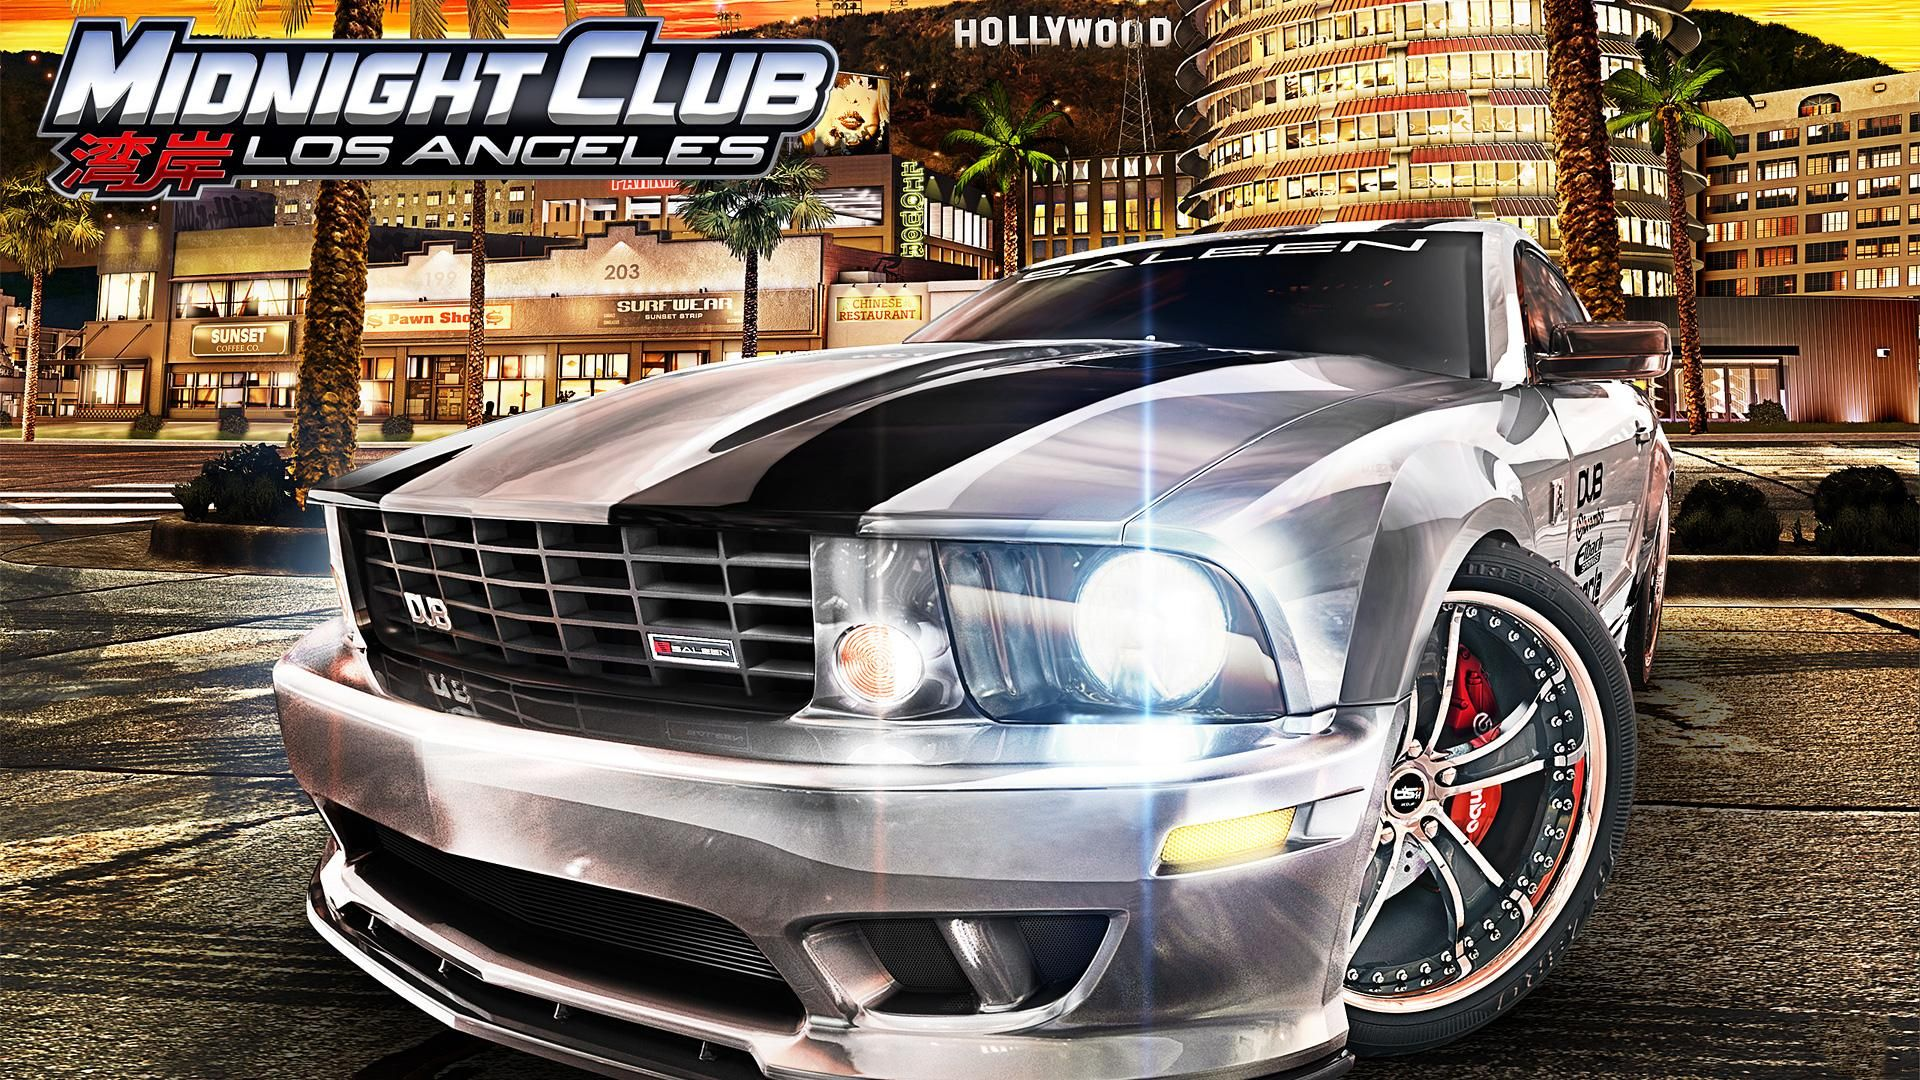 Midnight club los angeles hd desktop wallpaper widescreen high best games wallpapers pinterest midnight club and wallpaper